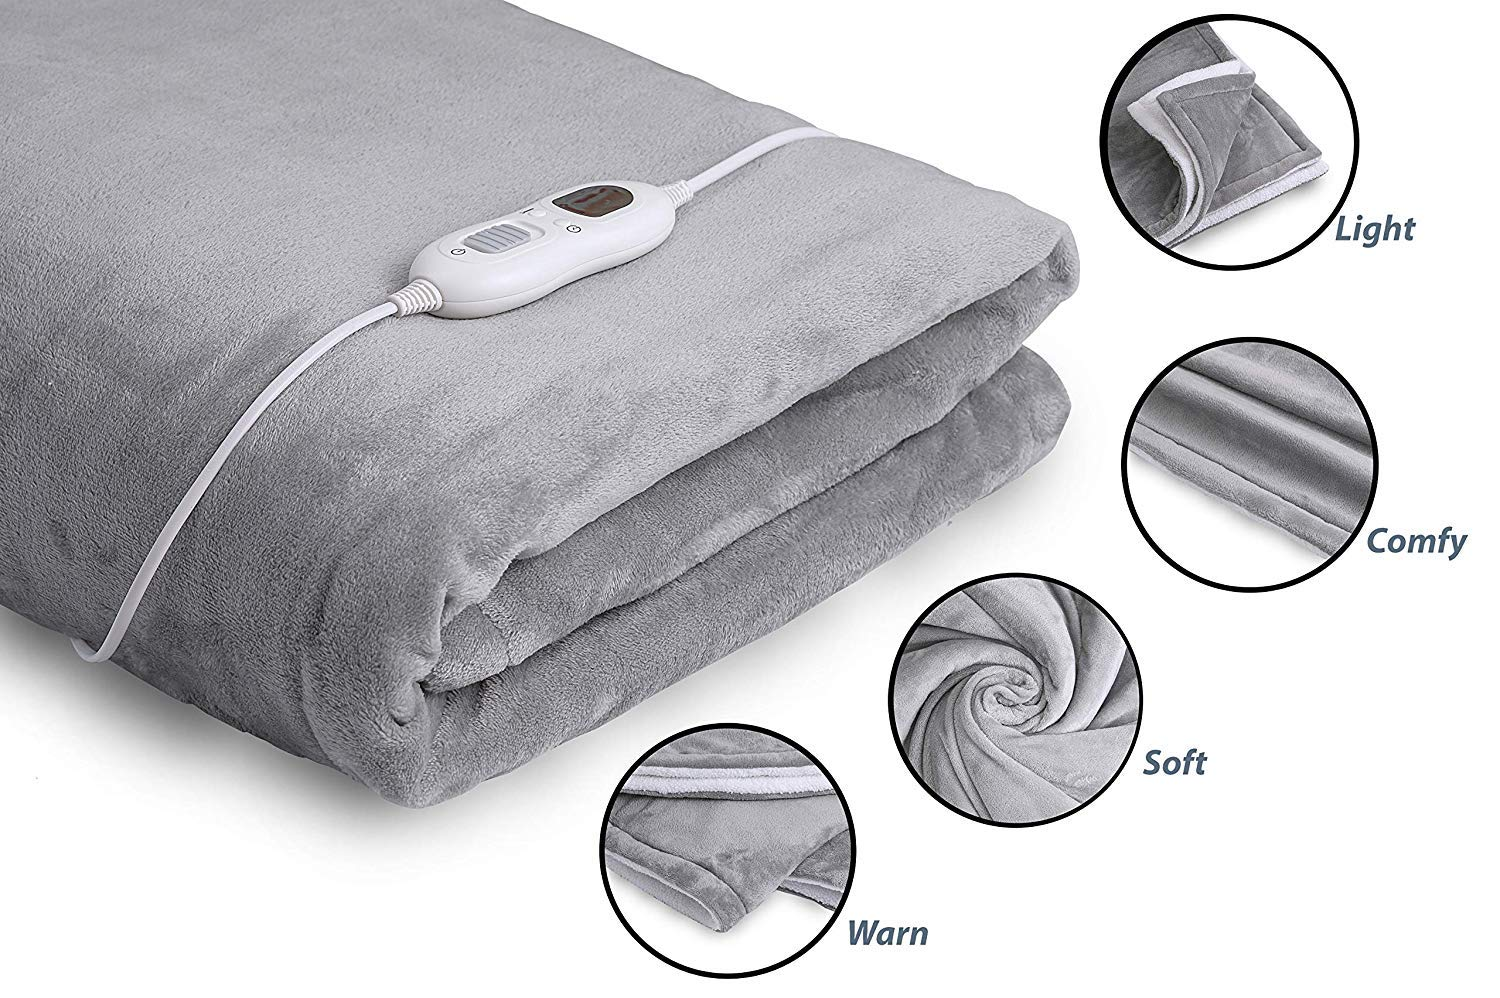 """InvoSpa Electric Throw Heated Blanket - 50"""" x 60"""" Flannel & Sherpa Fast Heating Blanket, with 3 Heating Levels, 8 Hours Auto Off - Electric Blanket, Heated Mattress Pad - Machine Washable"""